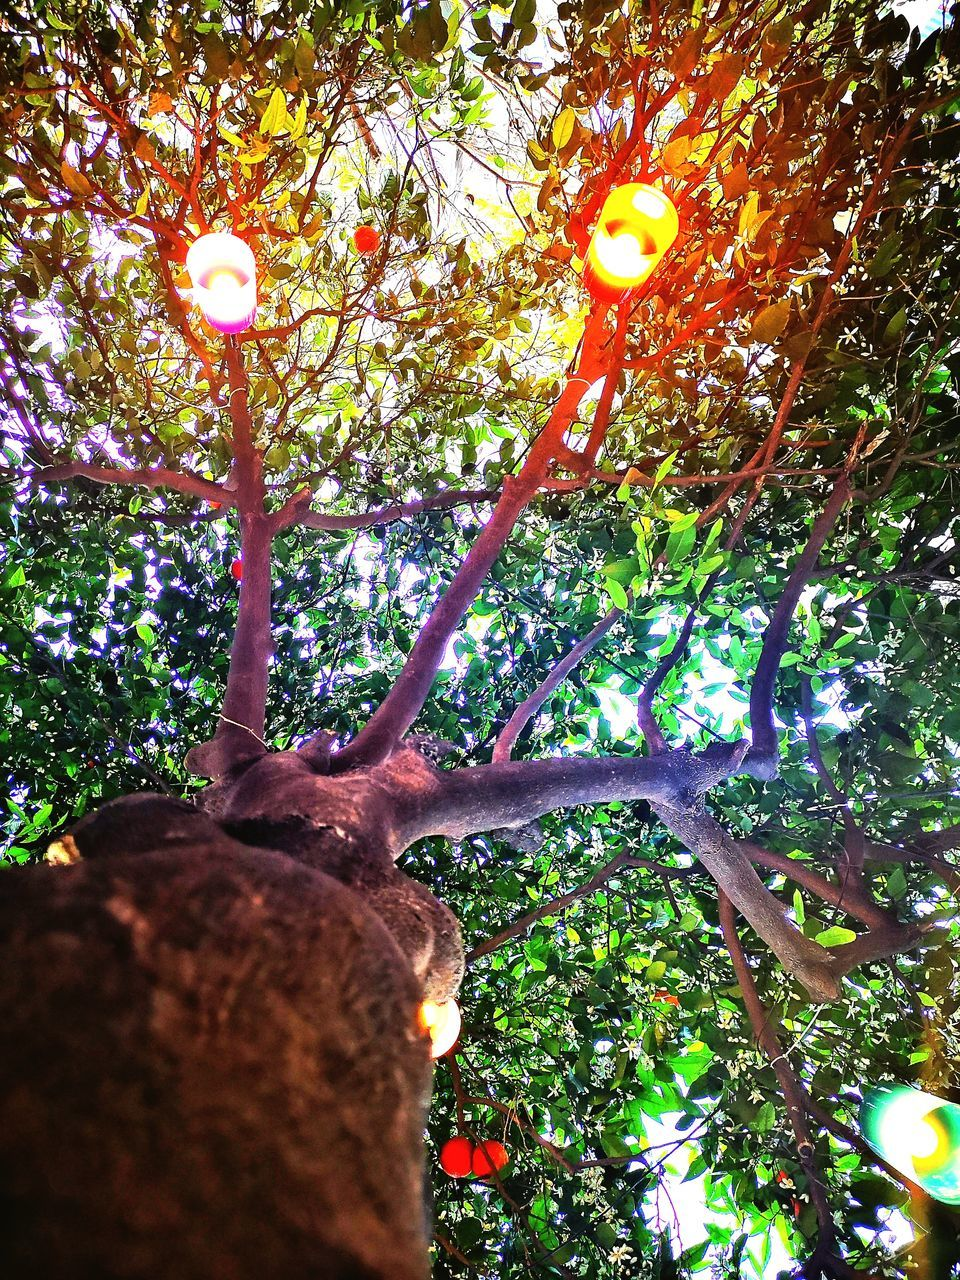 tree, plant, growth, branch, nature, lighting equipment, low angle view, outdoors, illuminated, tree trunk, trunk, beauty in nature, no people, green color, day, tranquility, land, forest, selective focus, focus on foreground